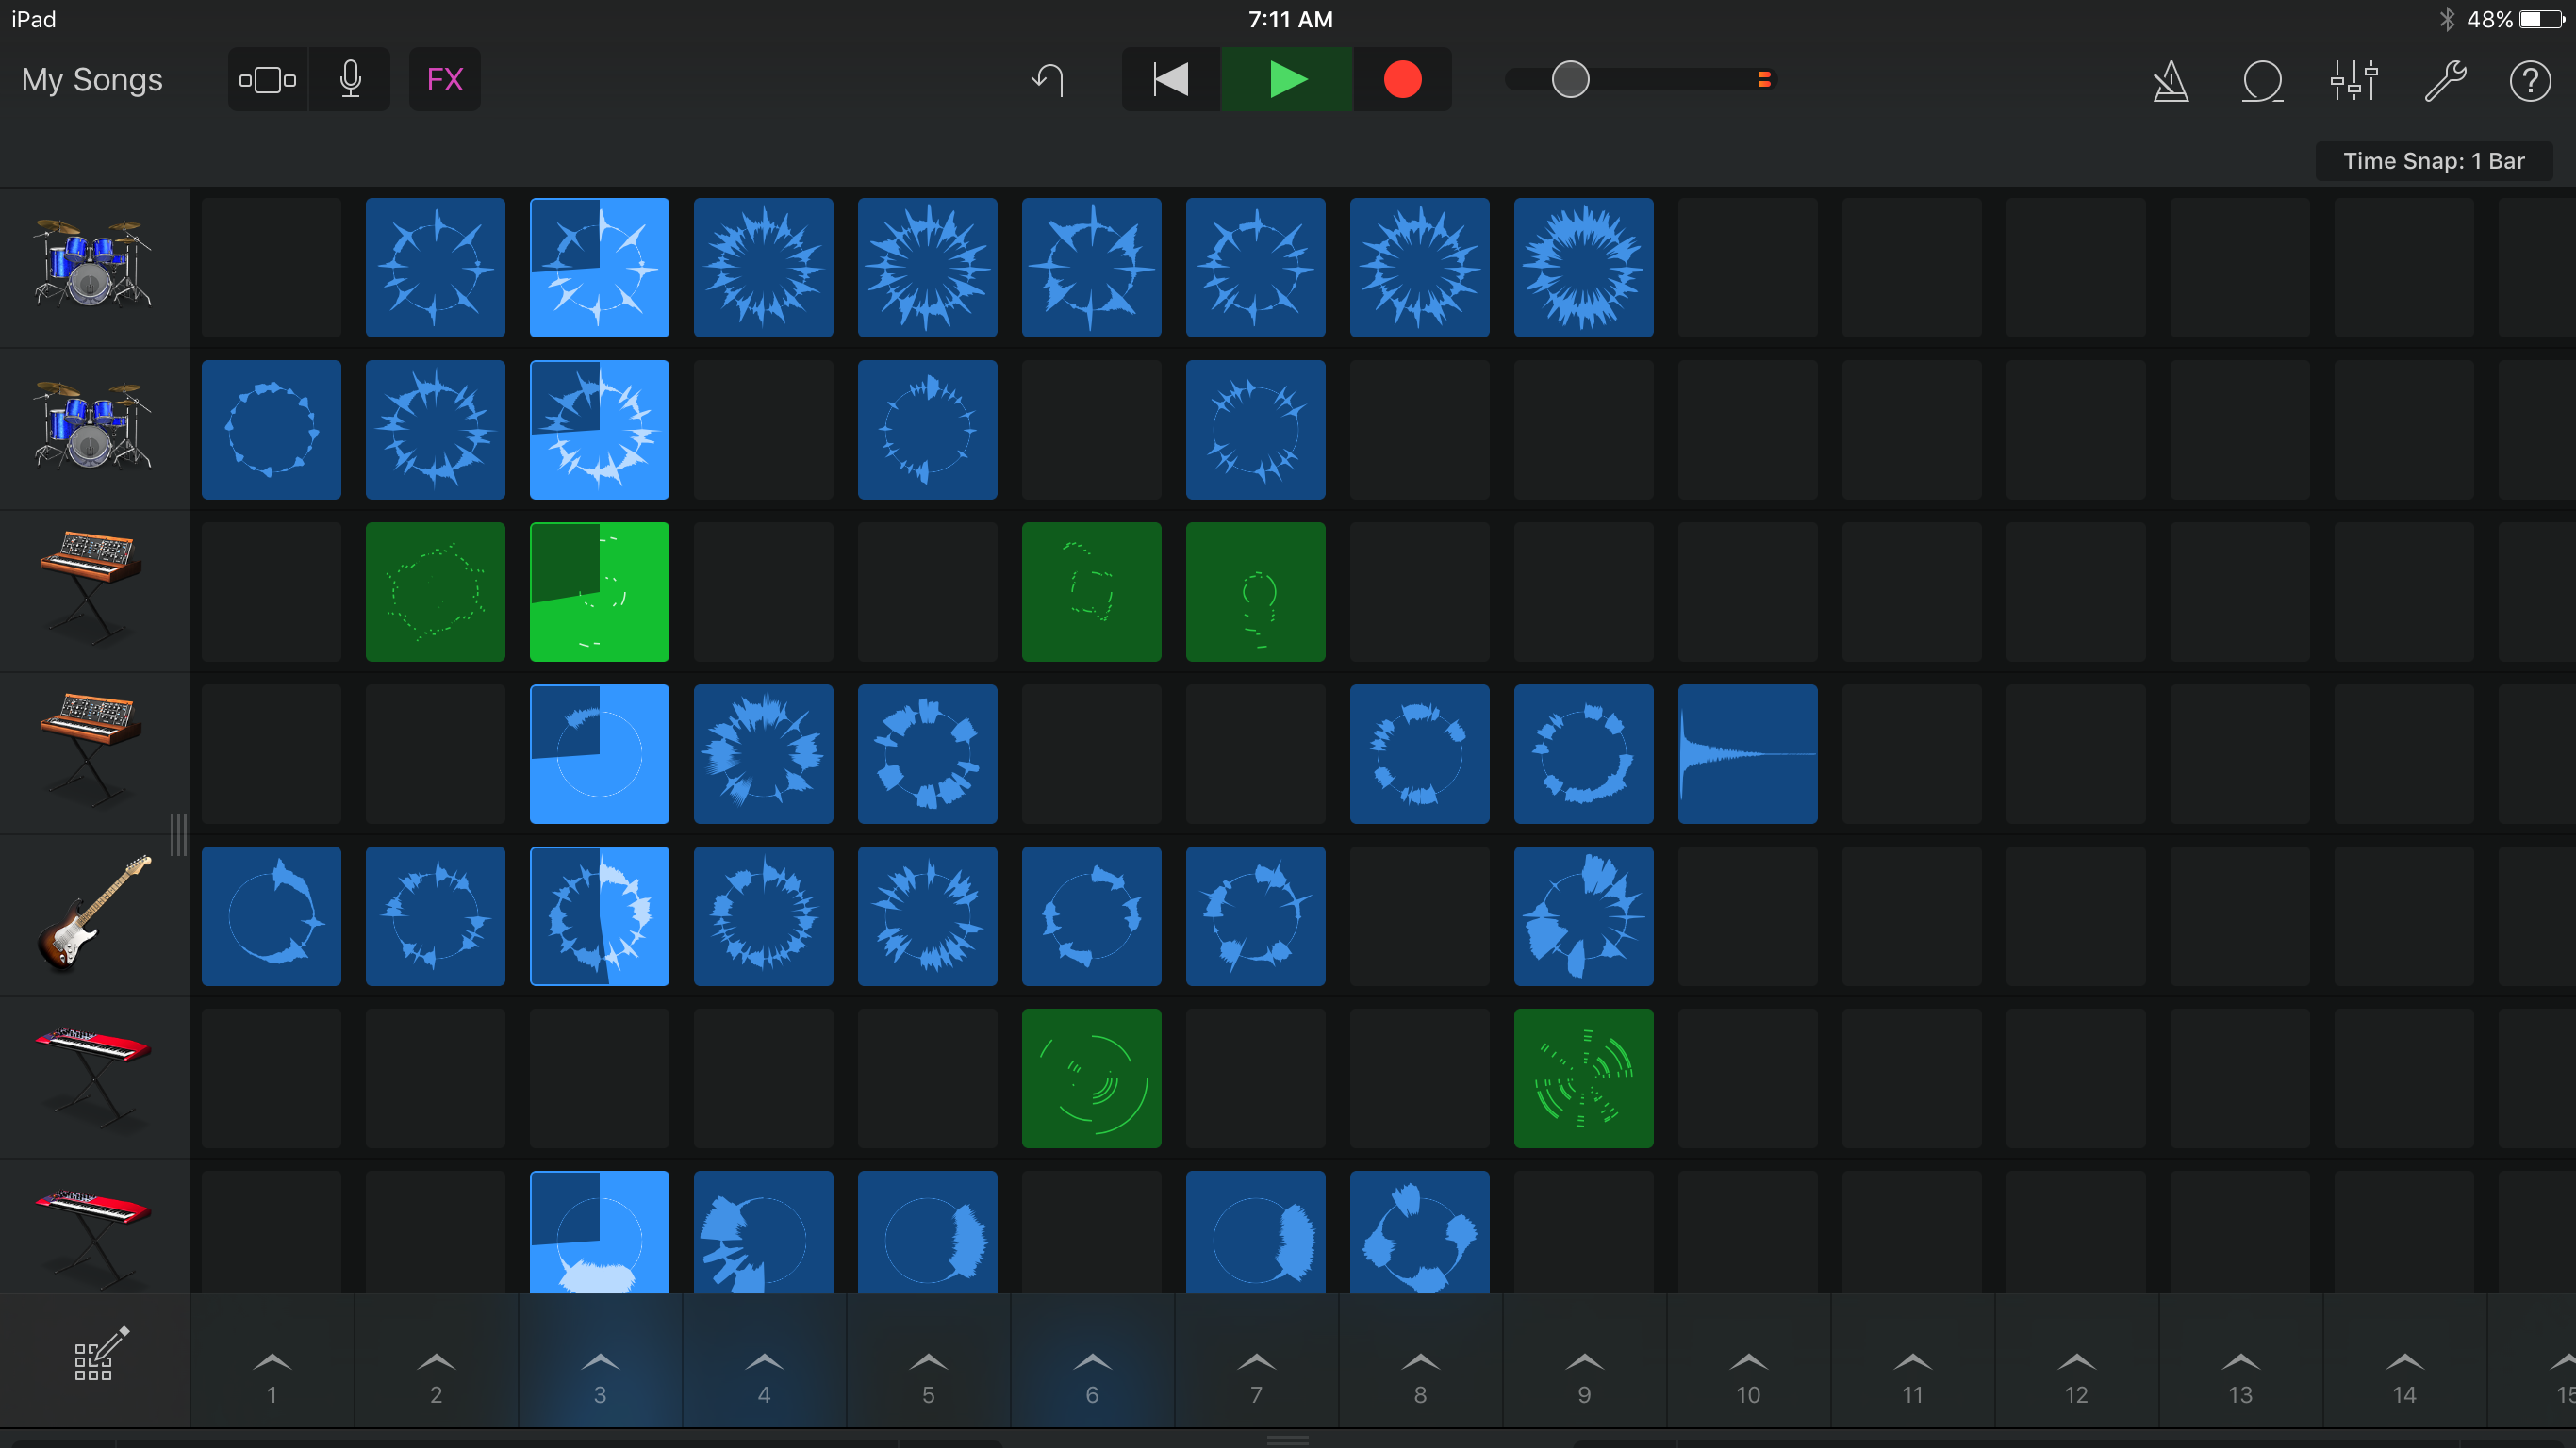 Apple S New Garageband For Ios Is An Electronic Musician S Dream